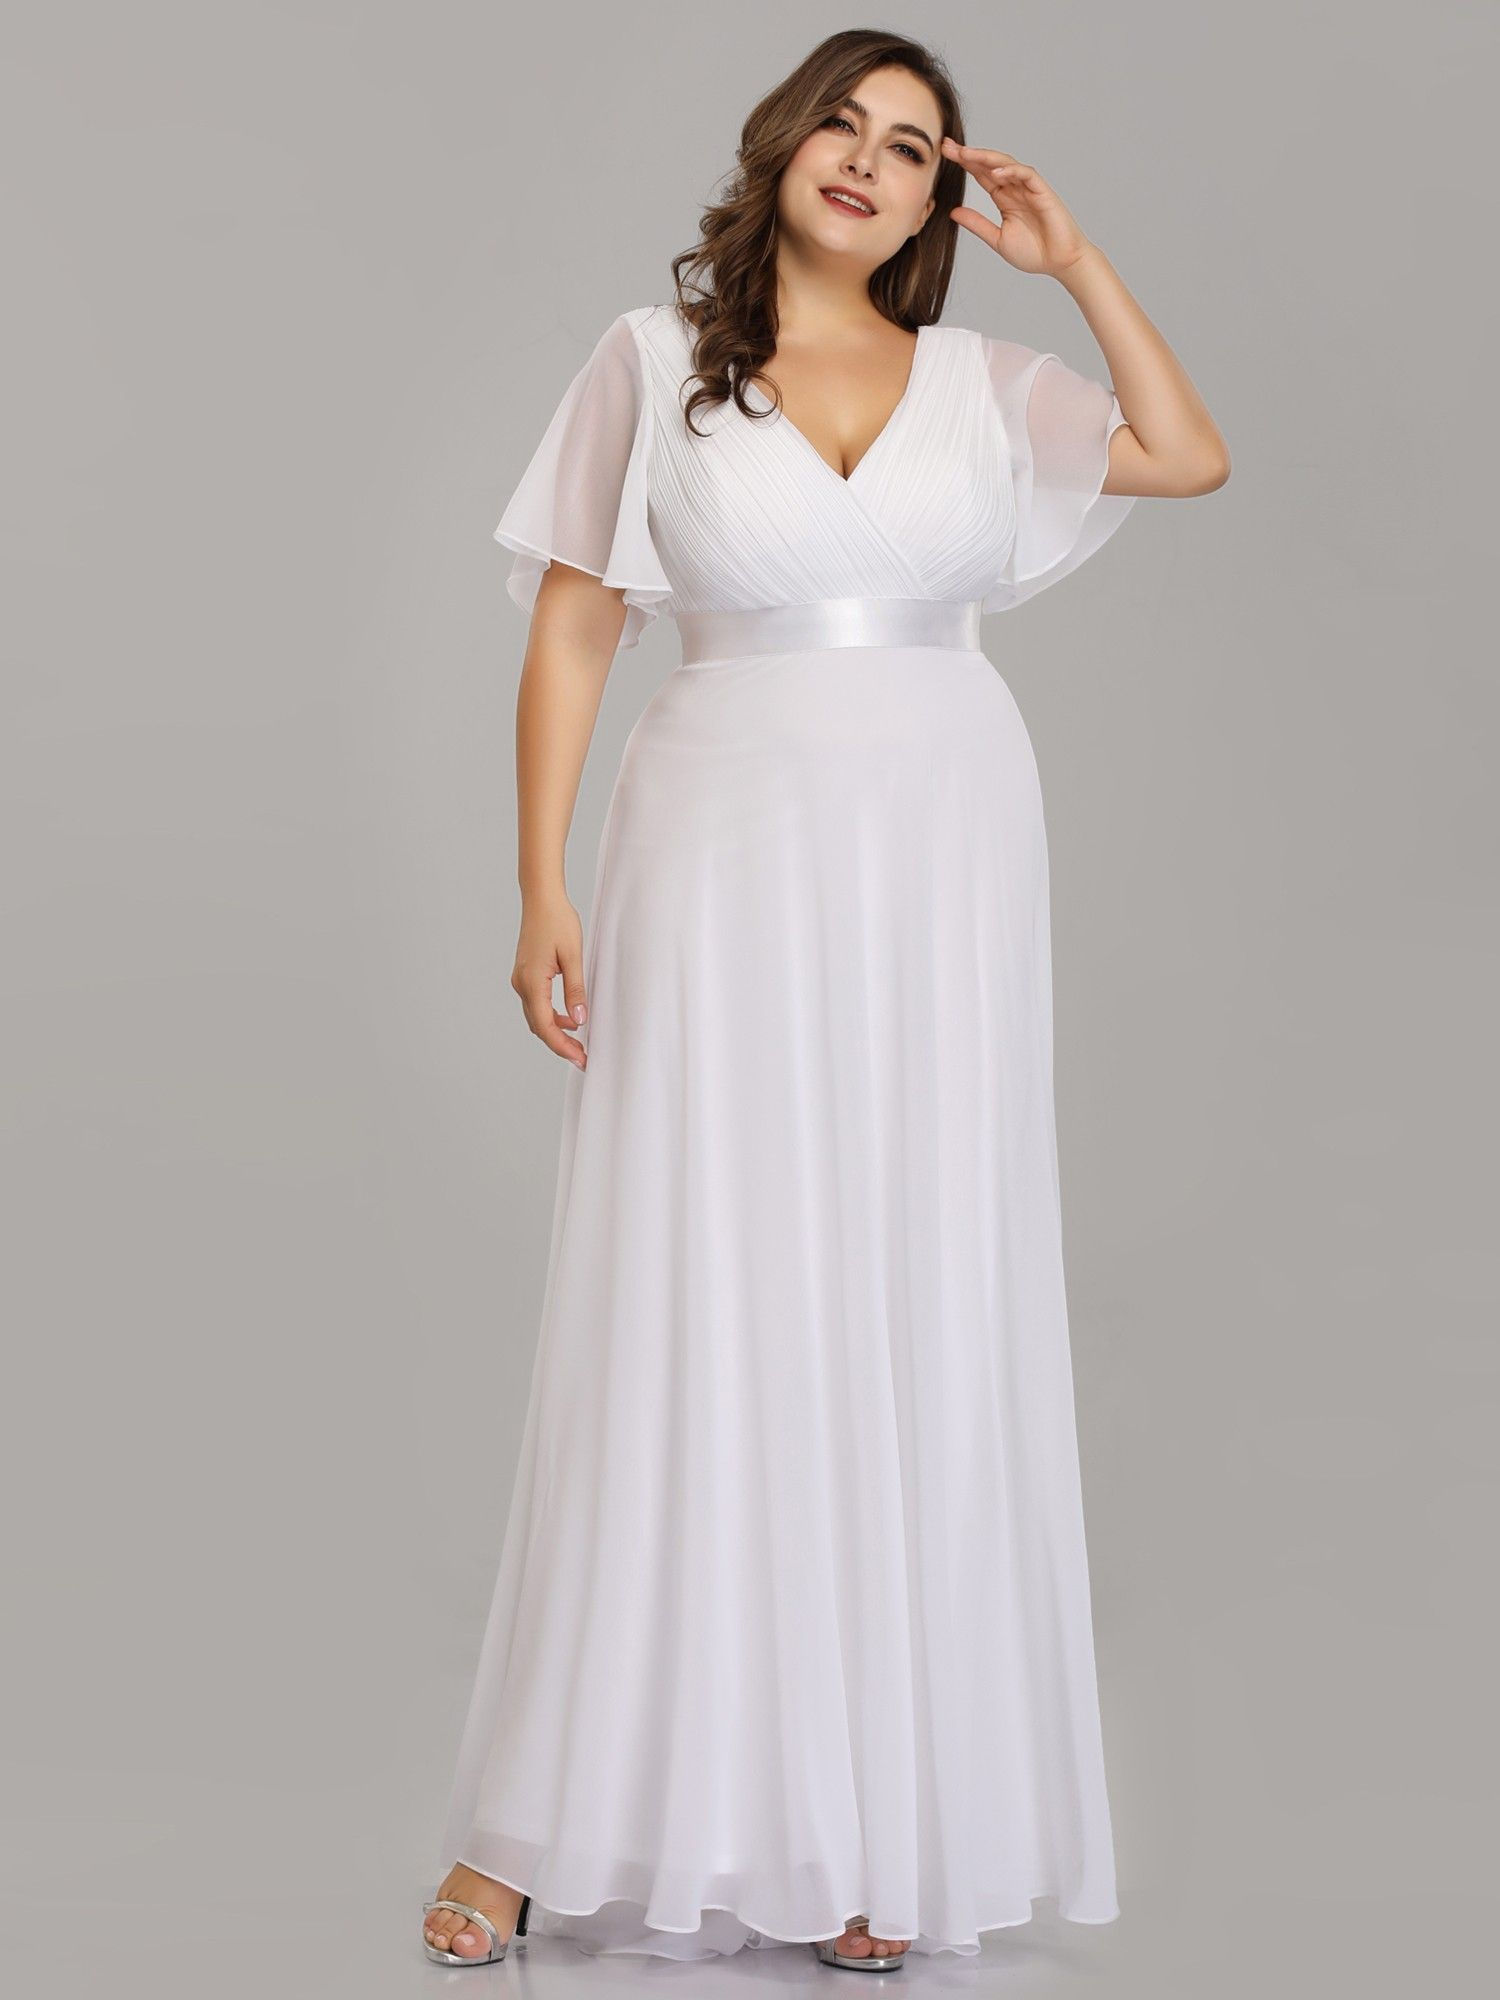 Pin on Plus Size Dresses | Ever-Pretty